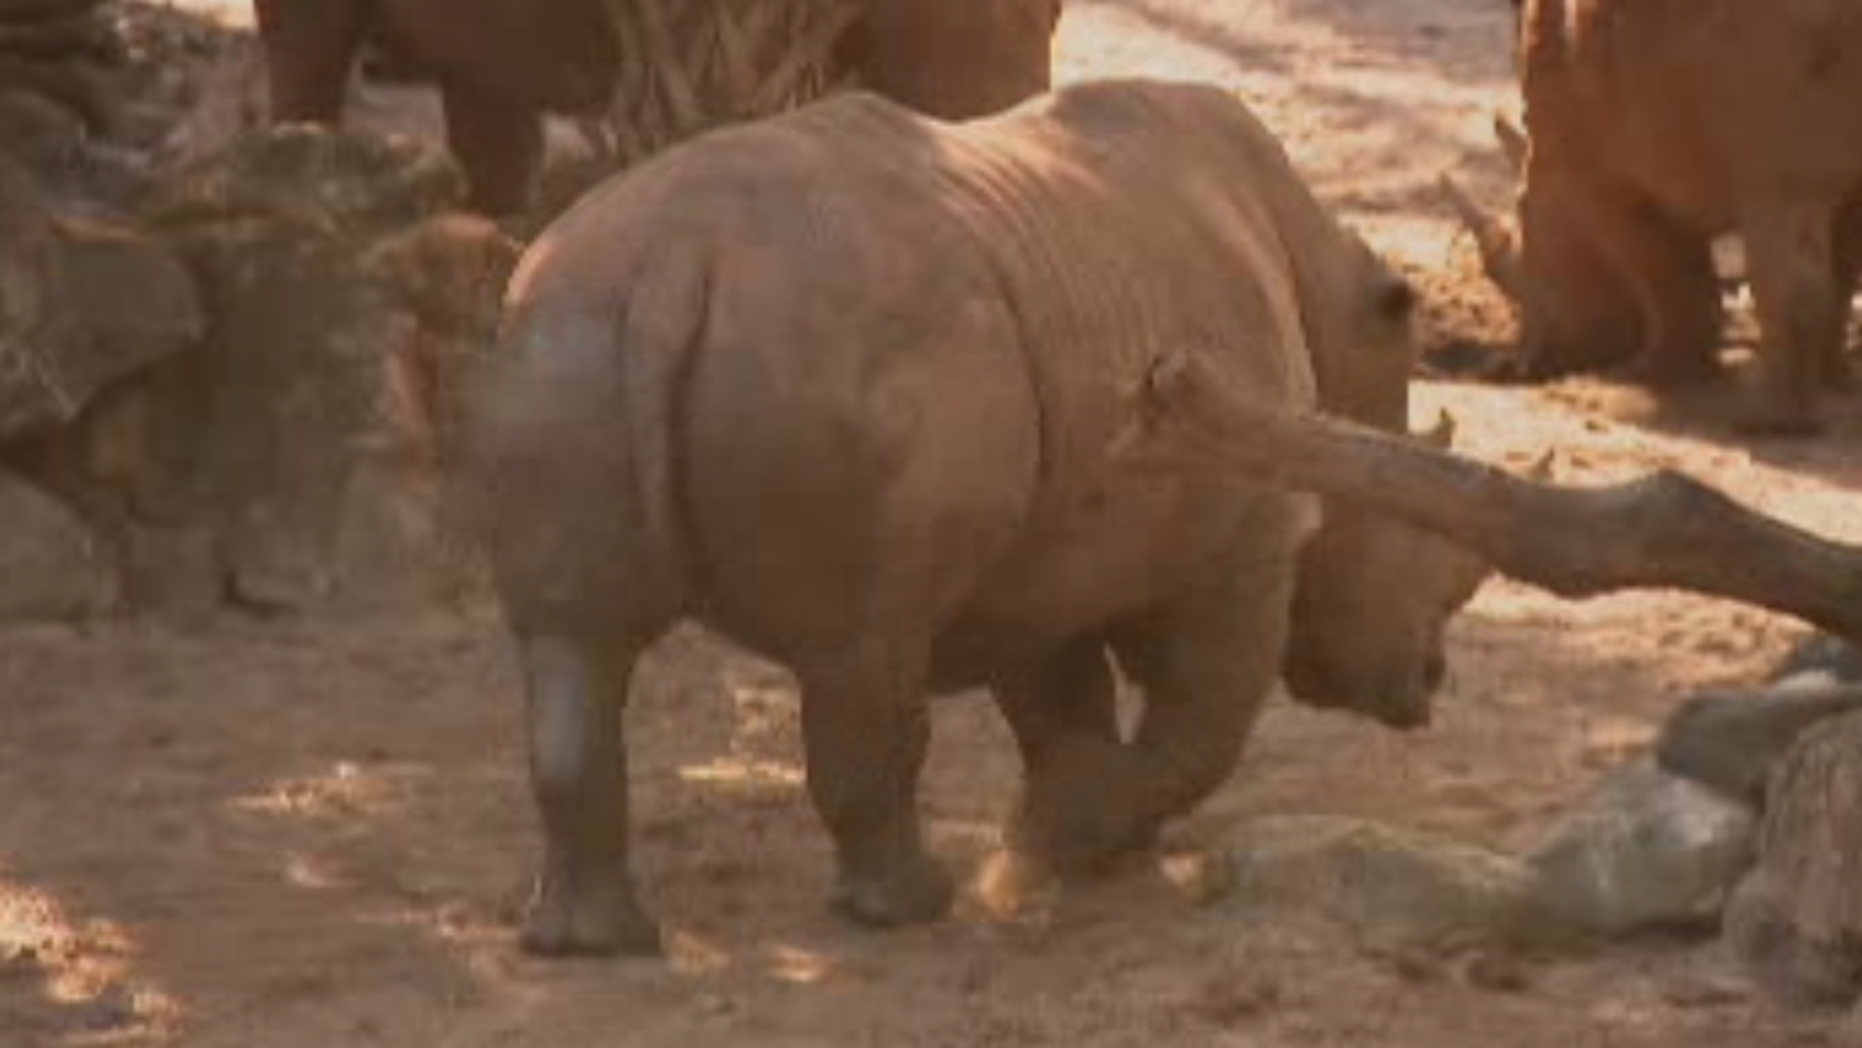 Child injured after fall into rhino exhibit at Florida zoo